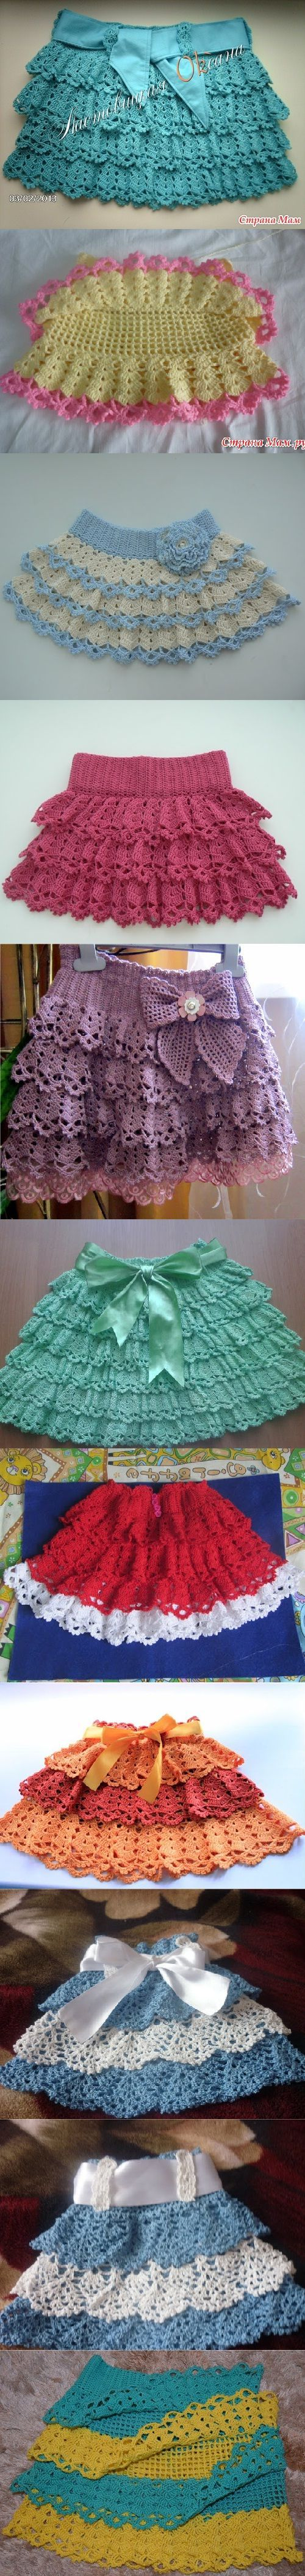 Not a site on crocheting (I don't think!) Can't get it to translate. Think I can get close by looking at the skirts.